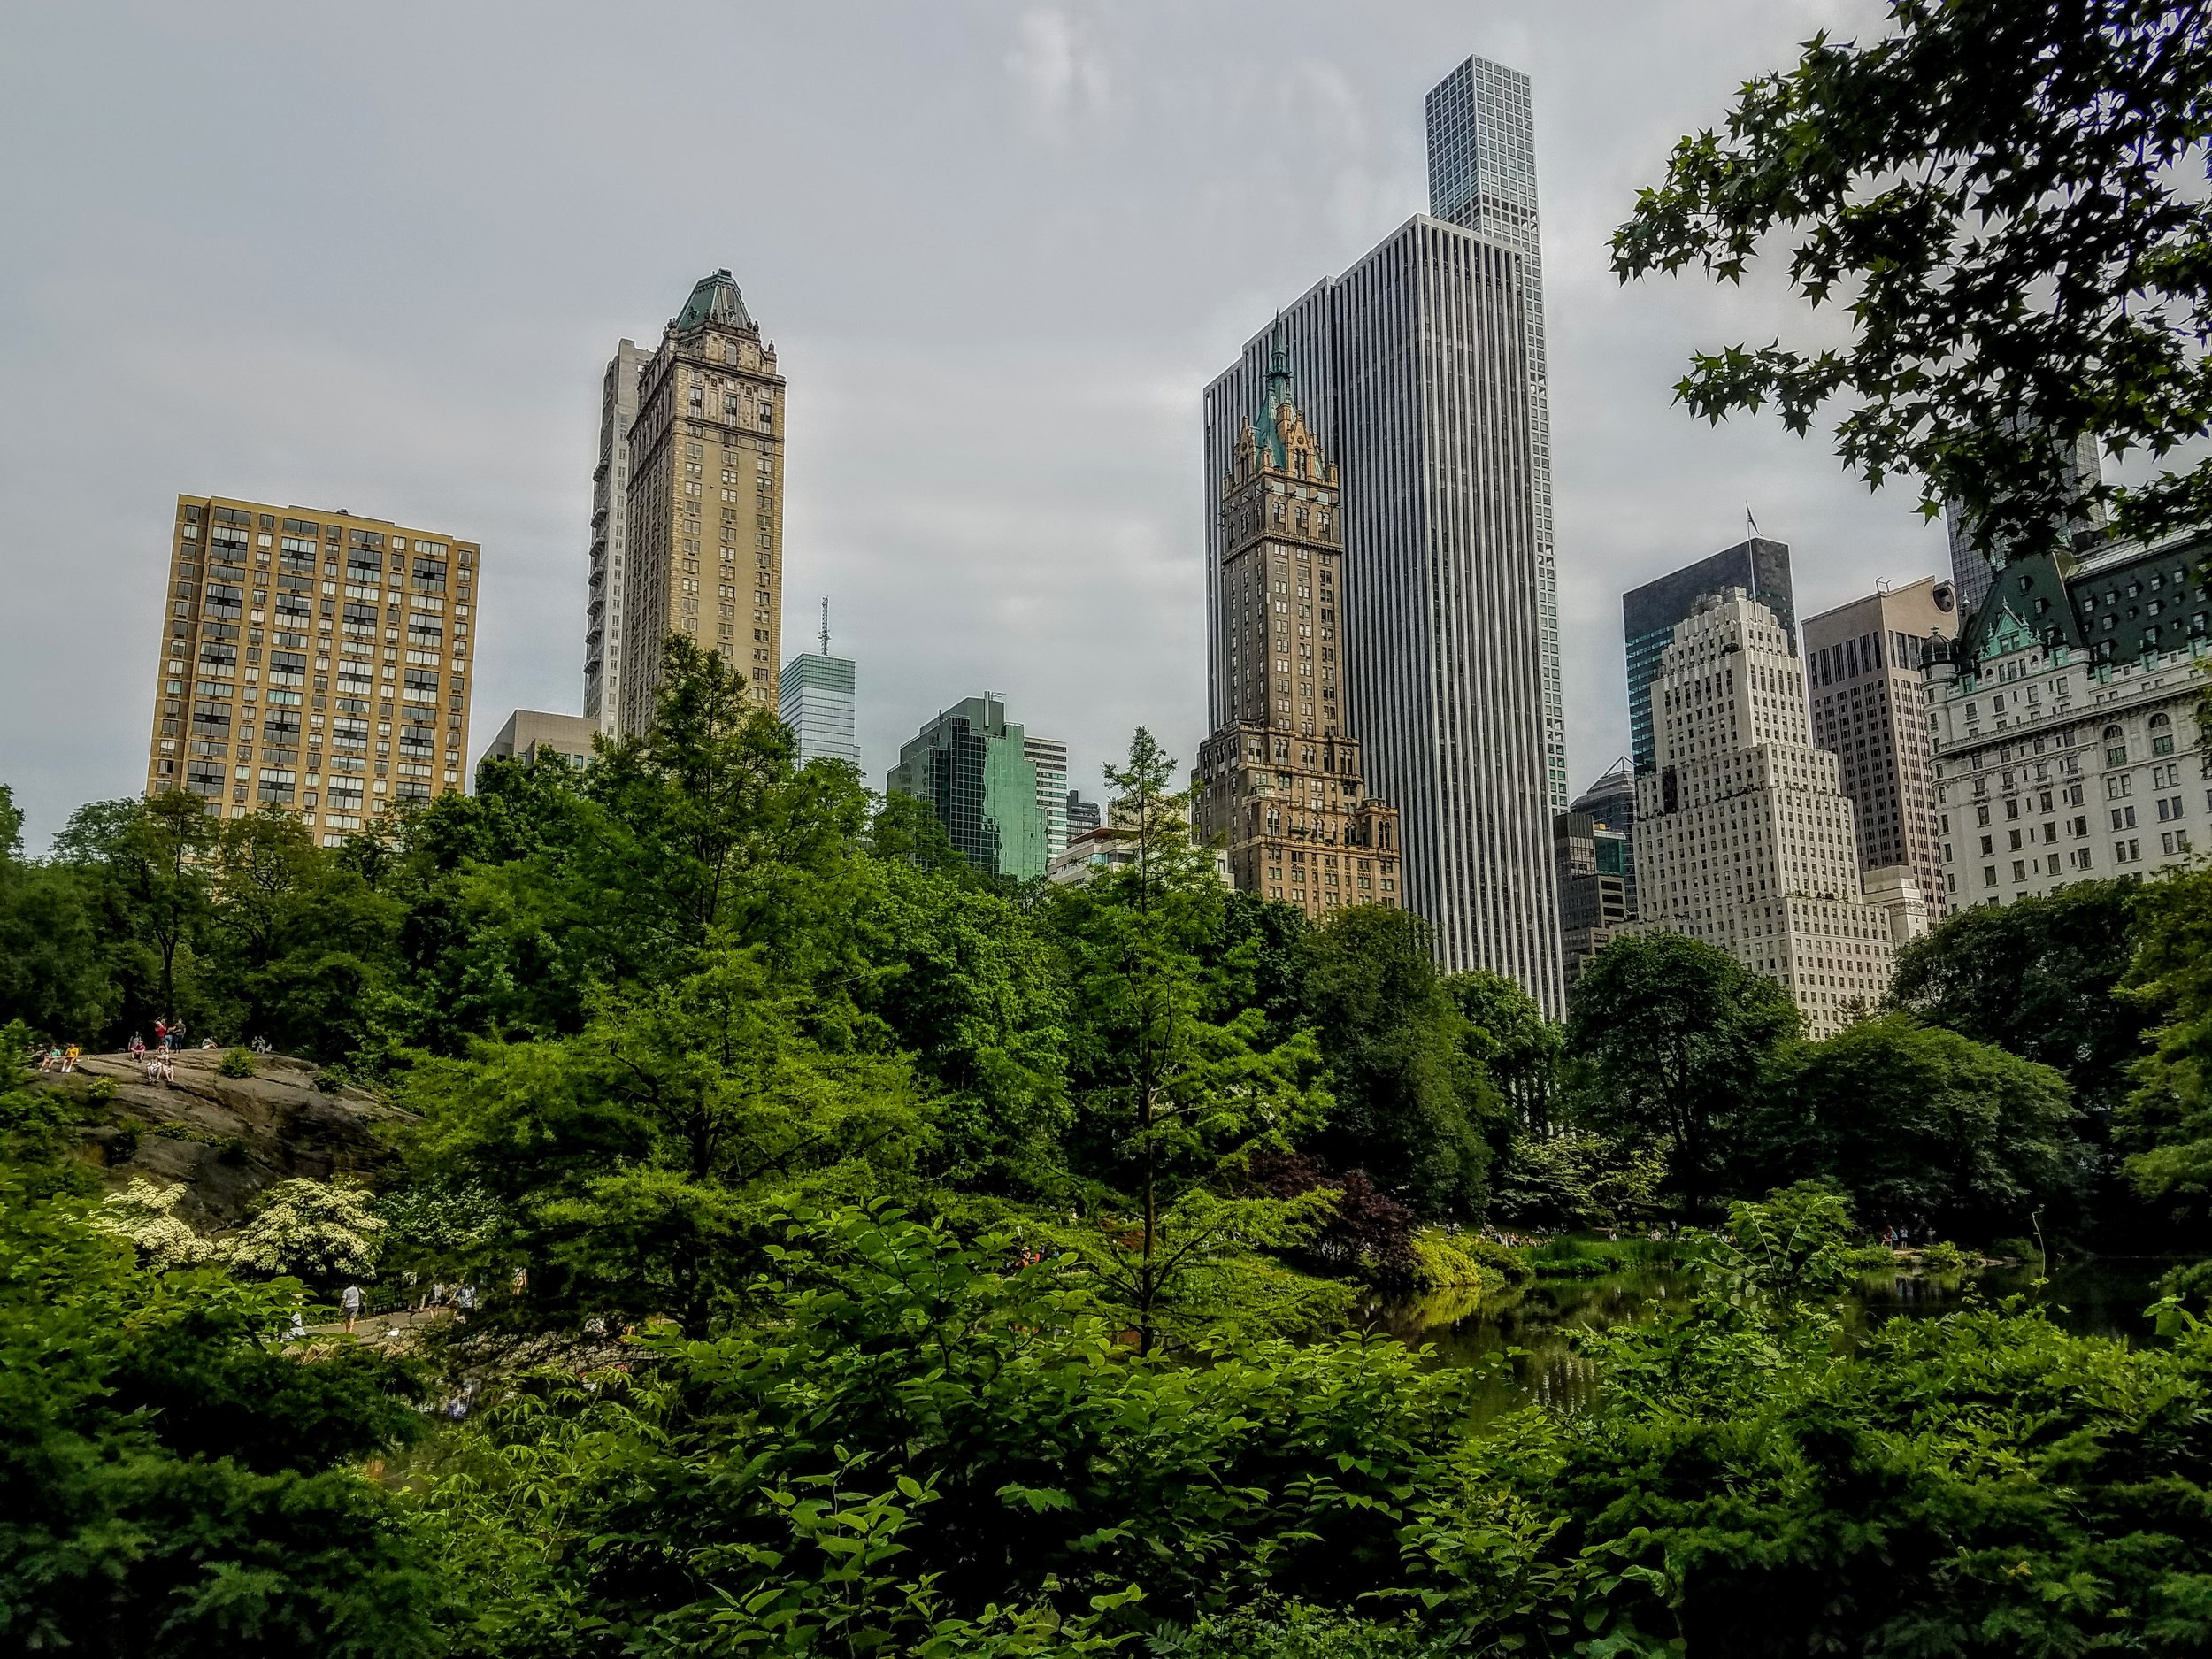 Central Park was so crowded but so beautiful.